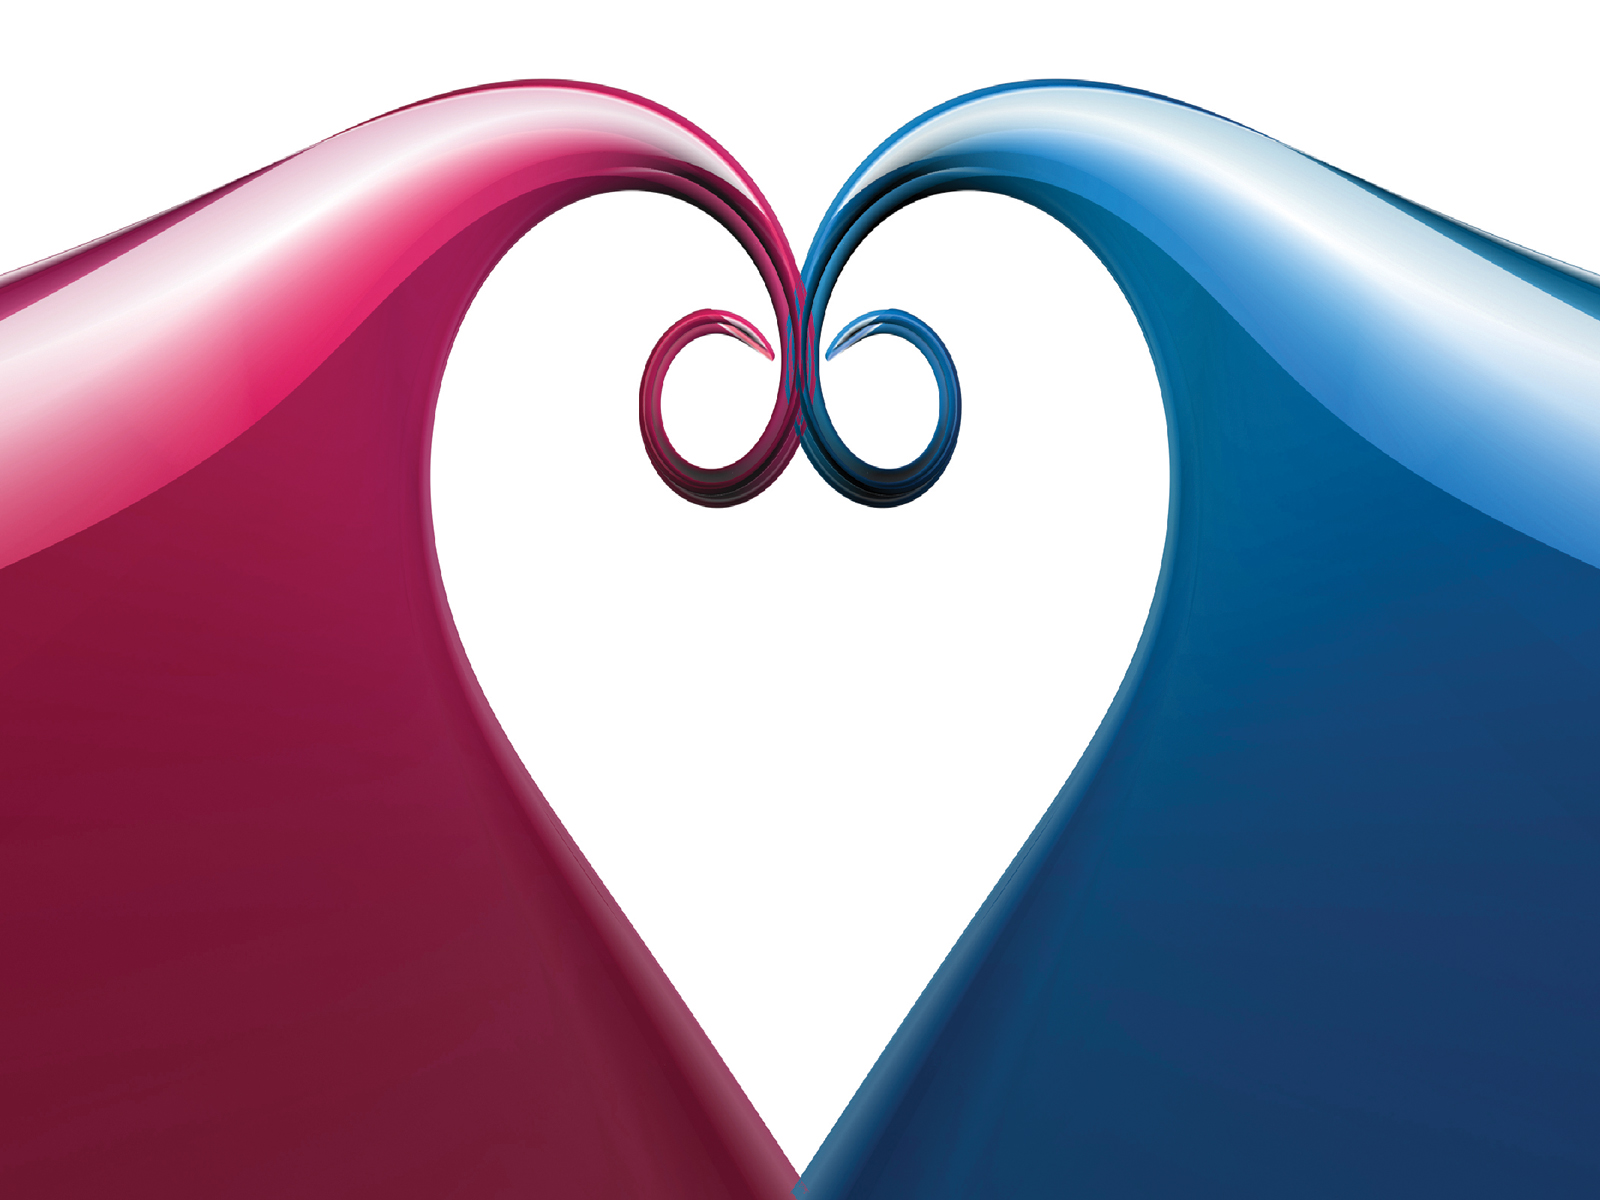 blue and red heart for love backgrounds love templates free ppt backgrounds and powerpoint. Black Bedroom Furniture Sets. Home Design Ideas